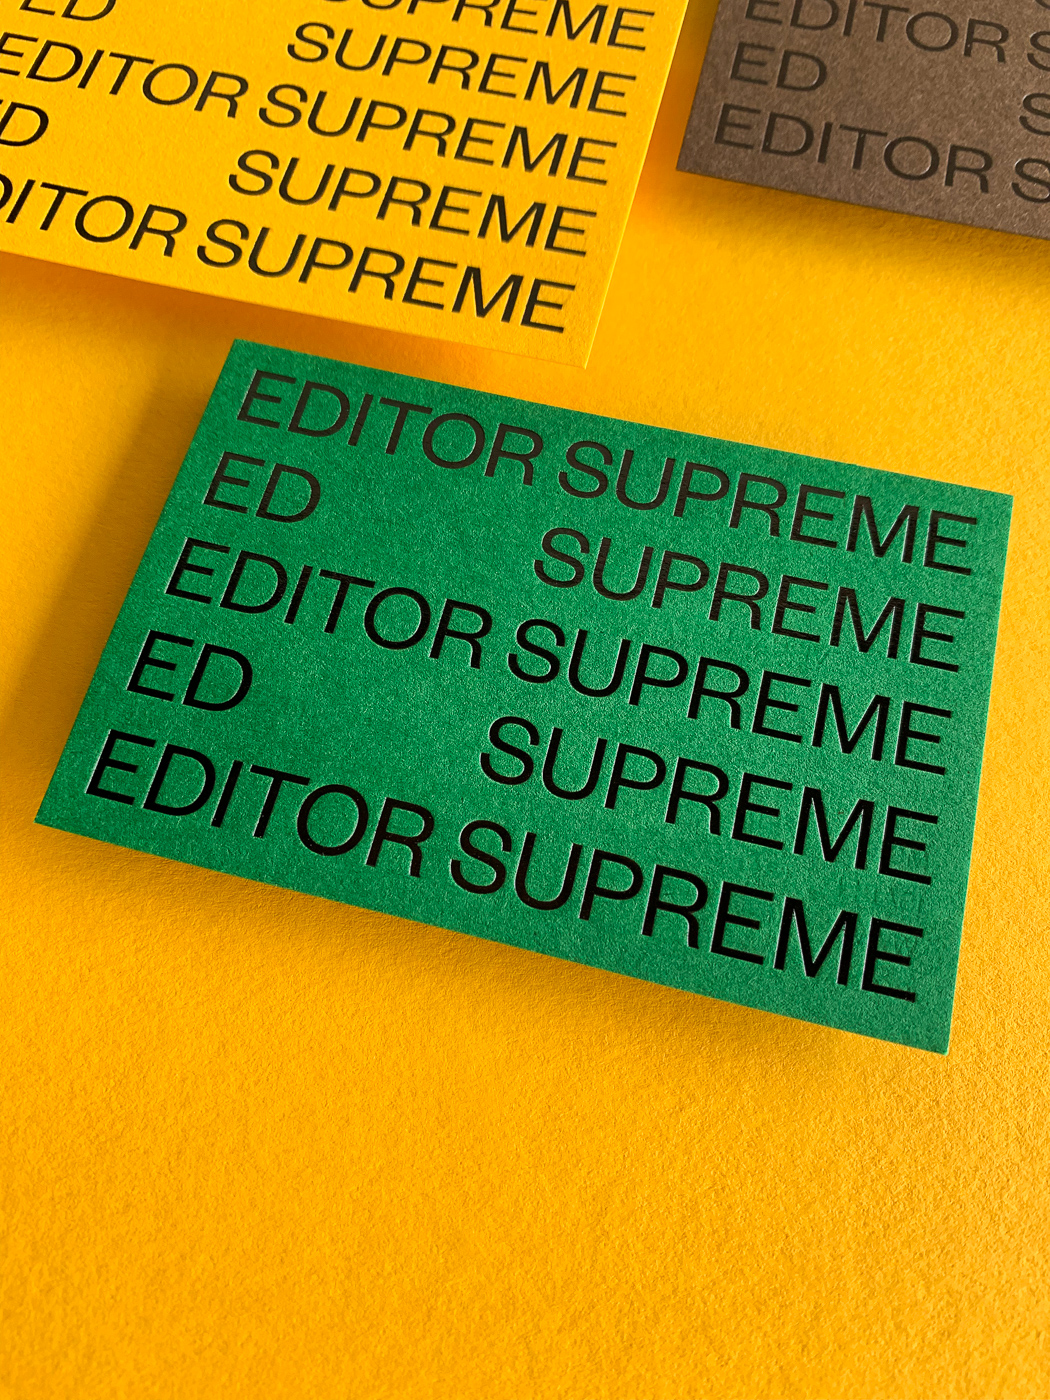 Black foil business cards for Ed Supreme on Colorplan 1